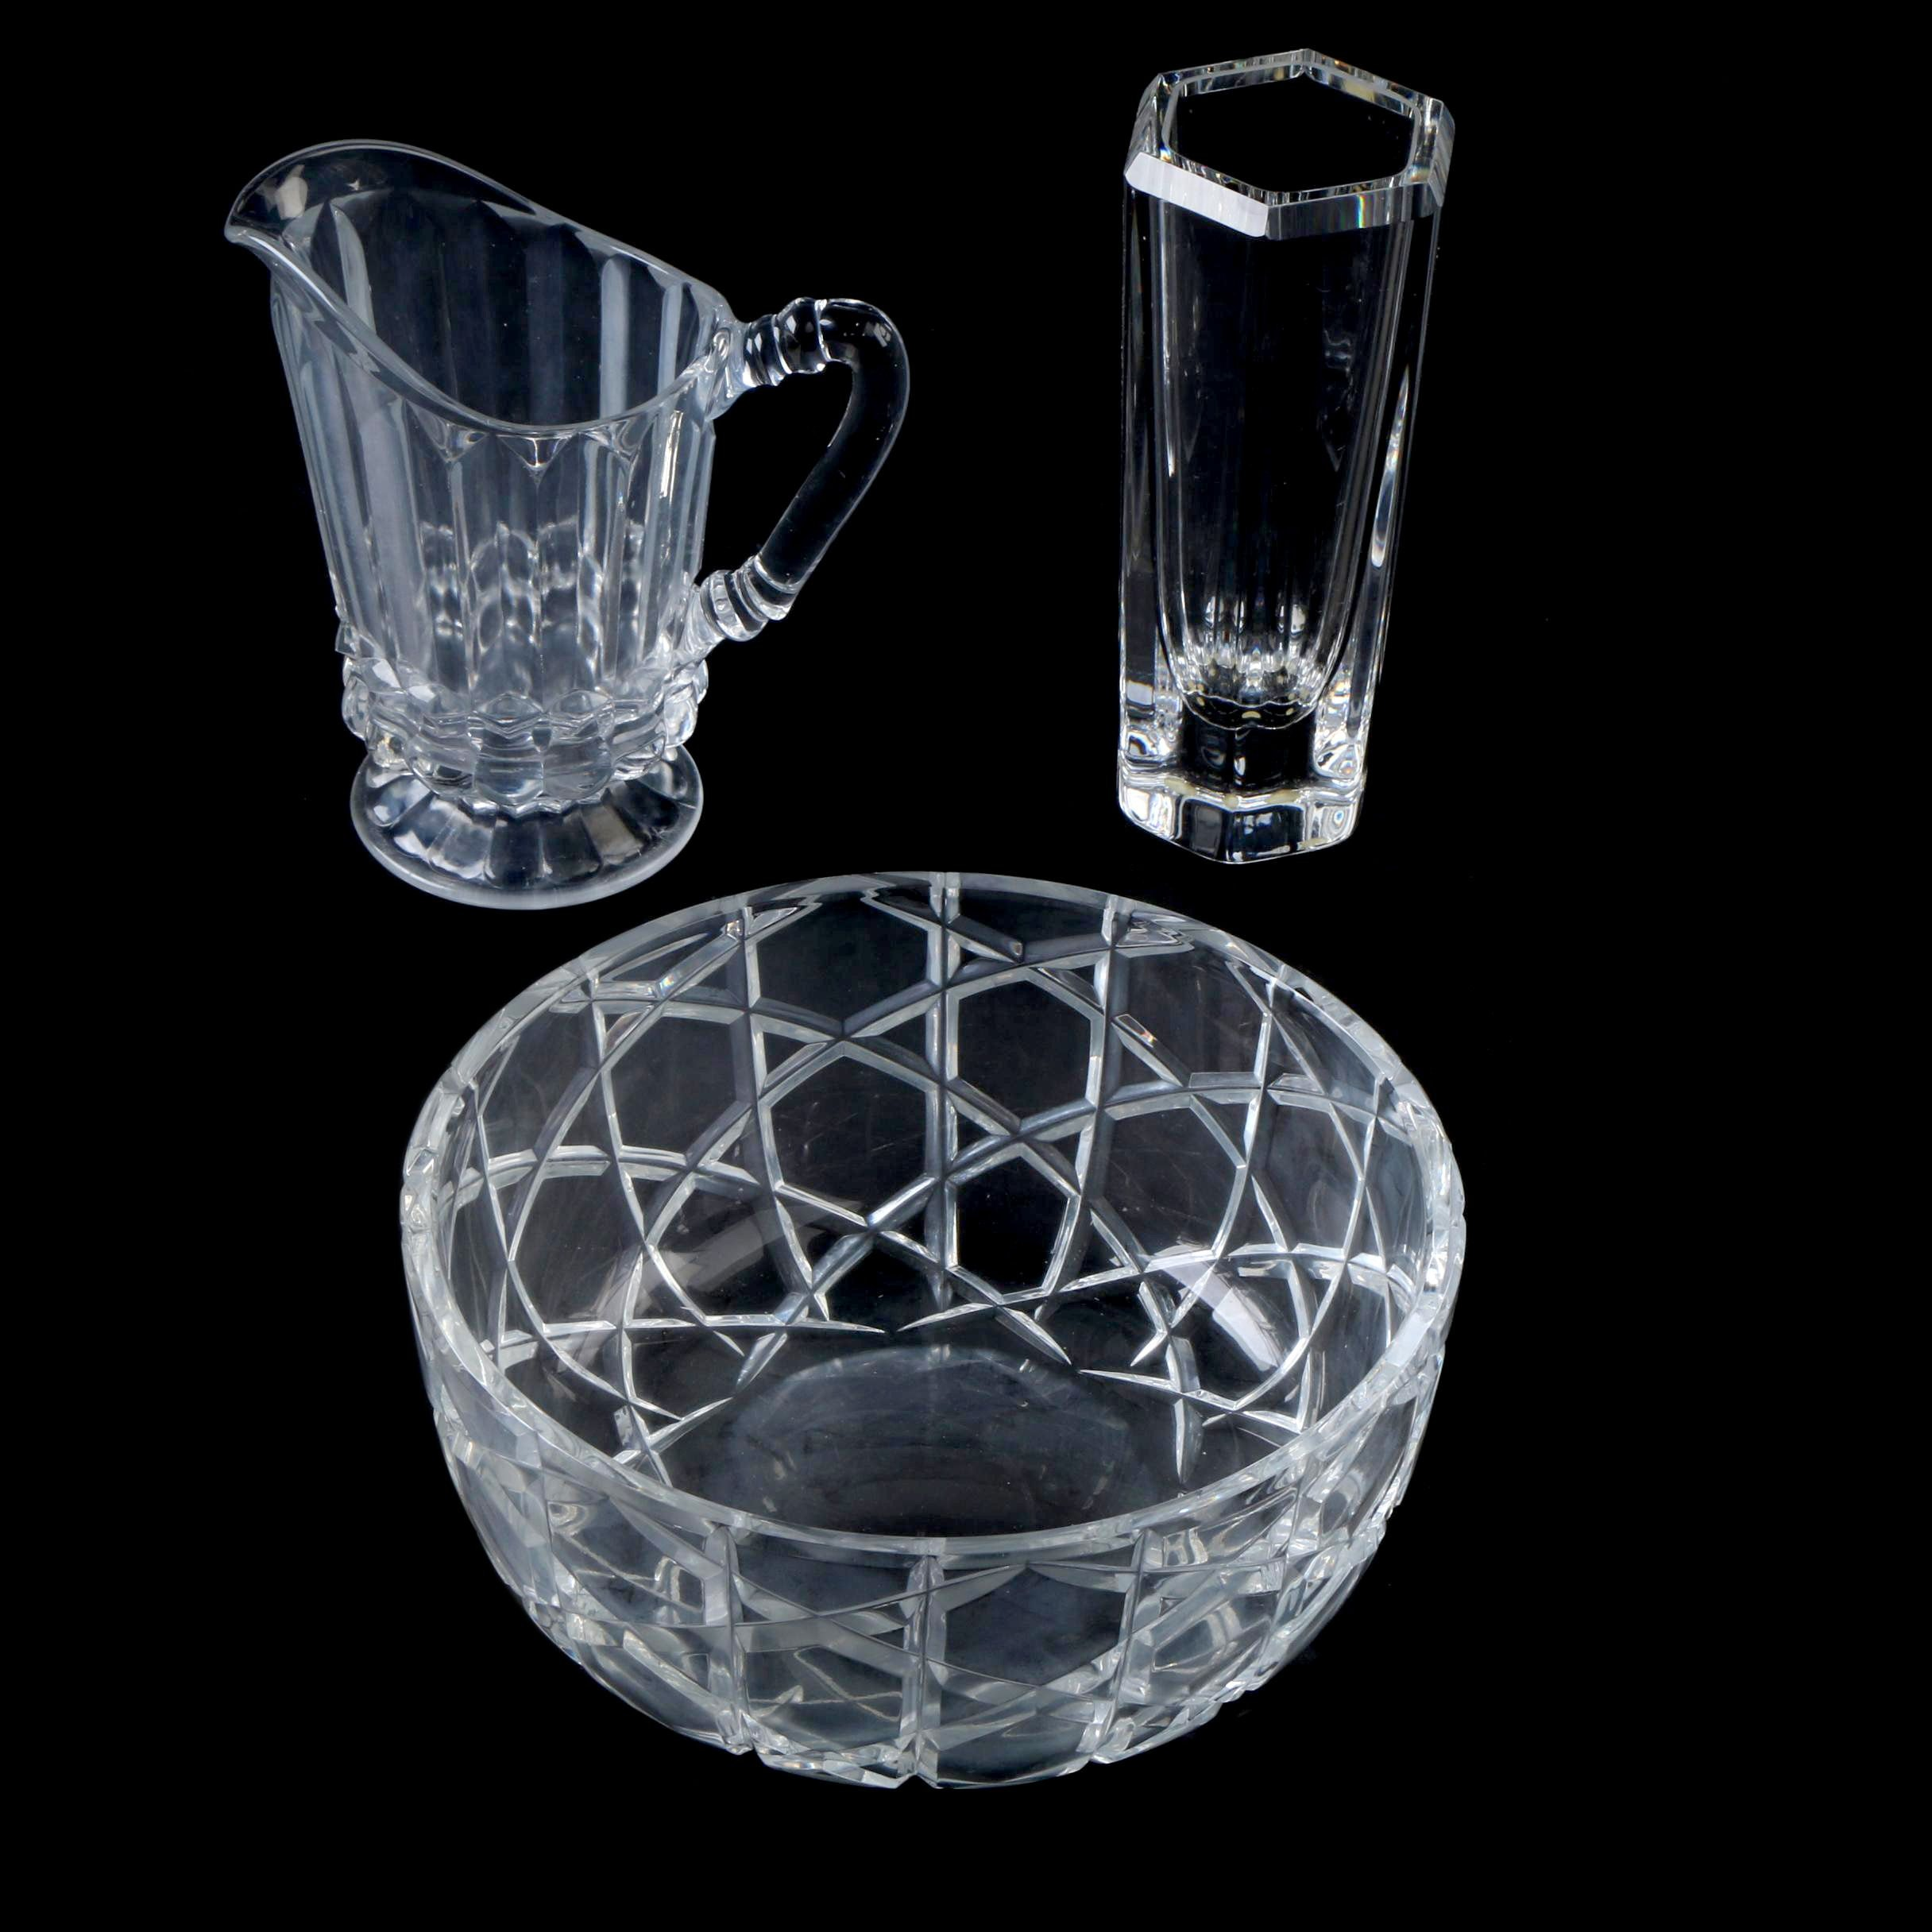 Kosta Vase and Other Glass Tableware Items